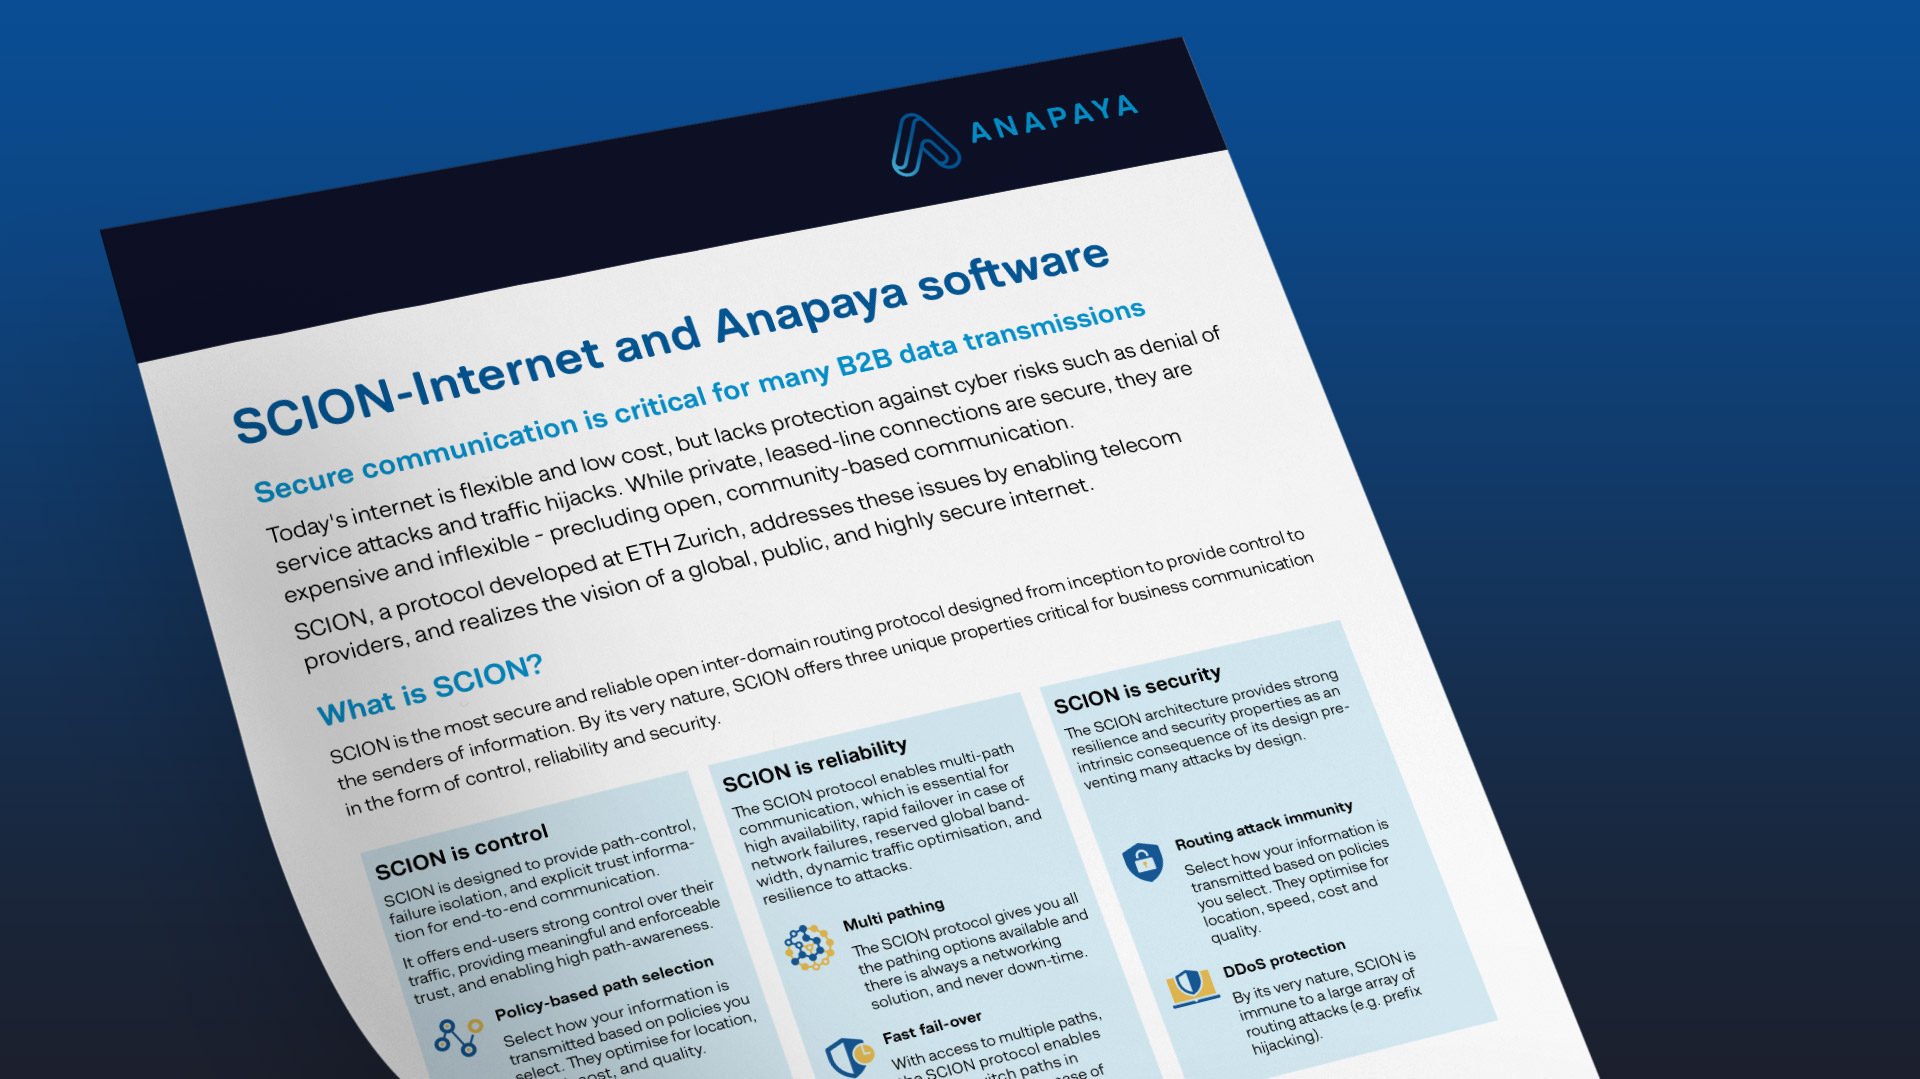 Anapaya Factsheet: SCION-Fabric and Anapaya Software